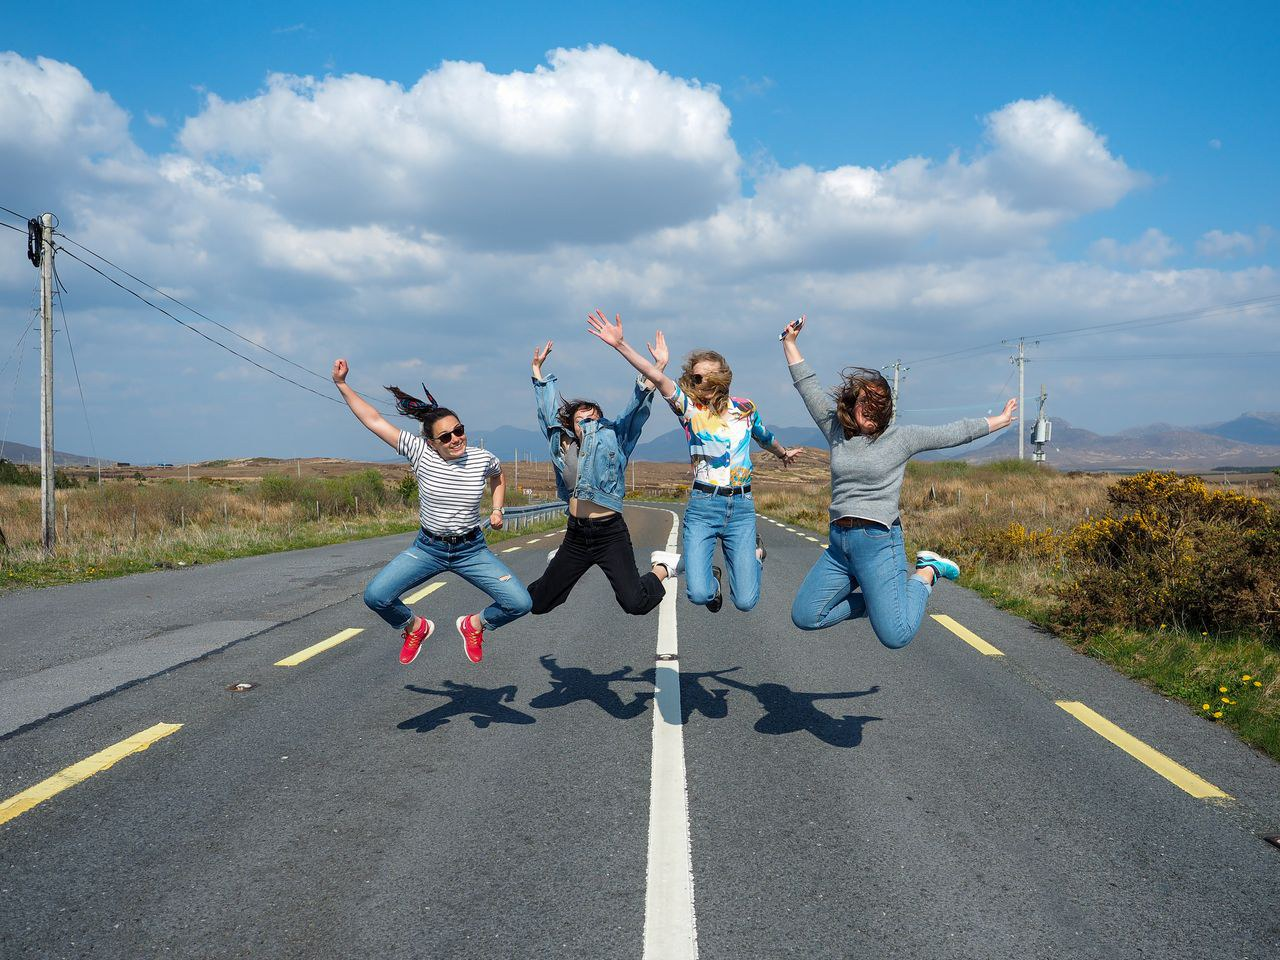 Semester abroad despite Corona: Miriam Berchtel and her friends are currently studying in Ireland